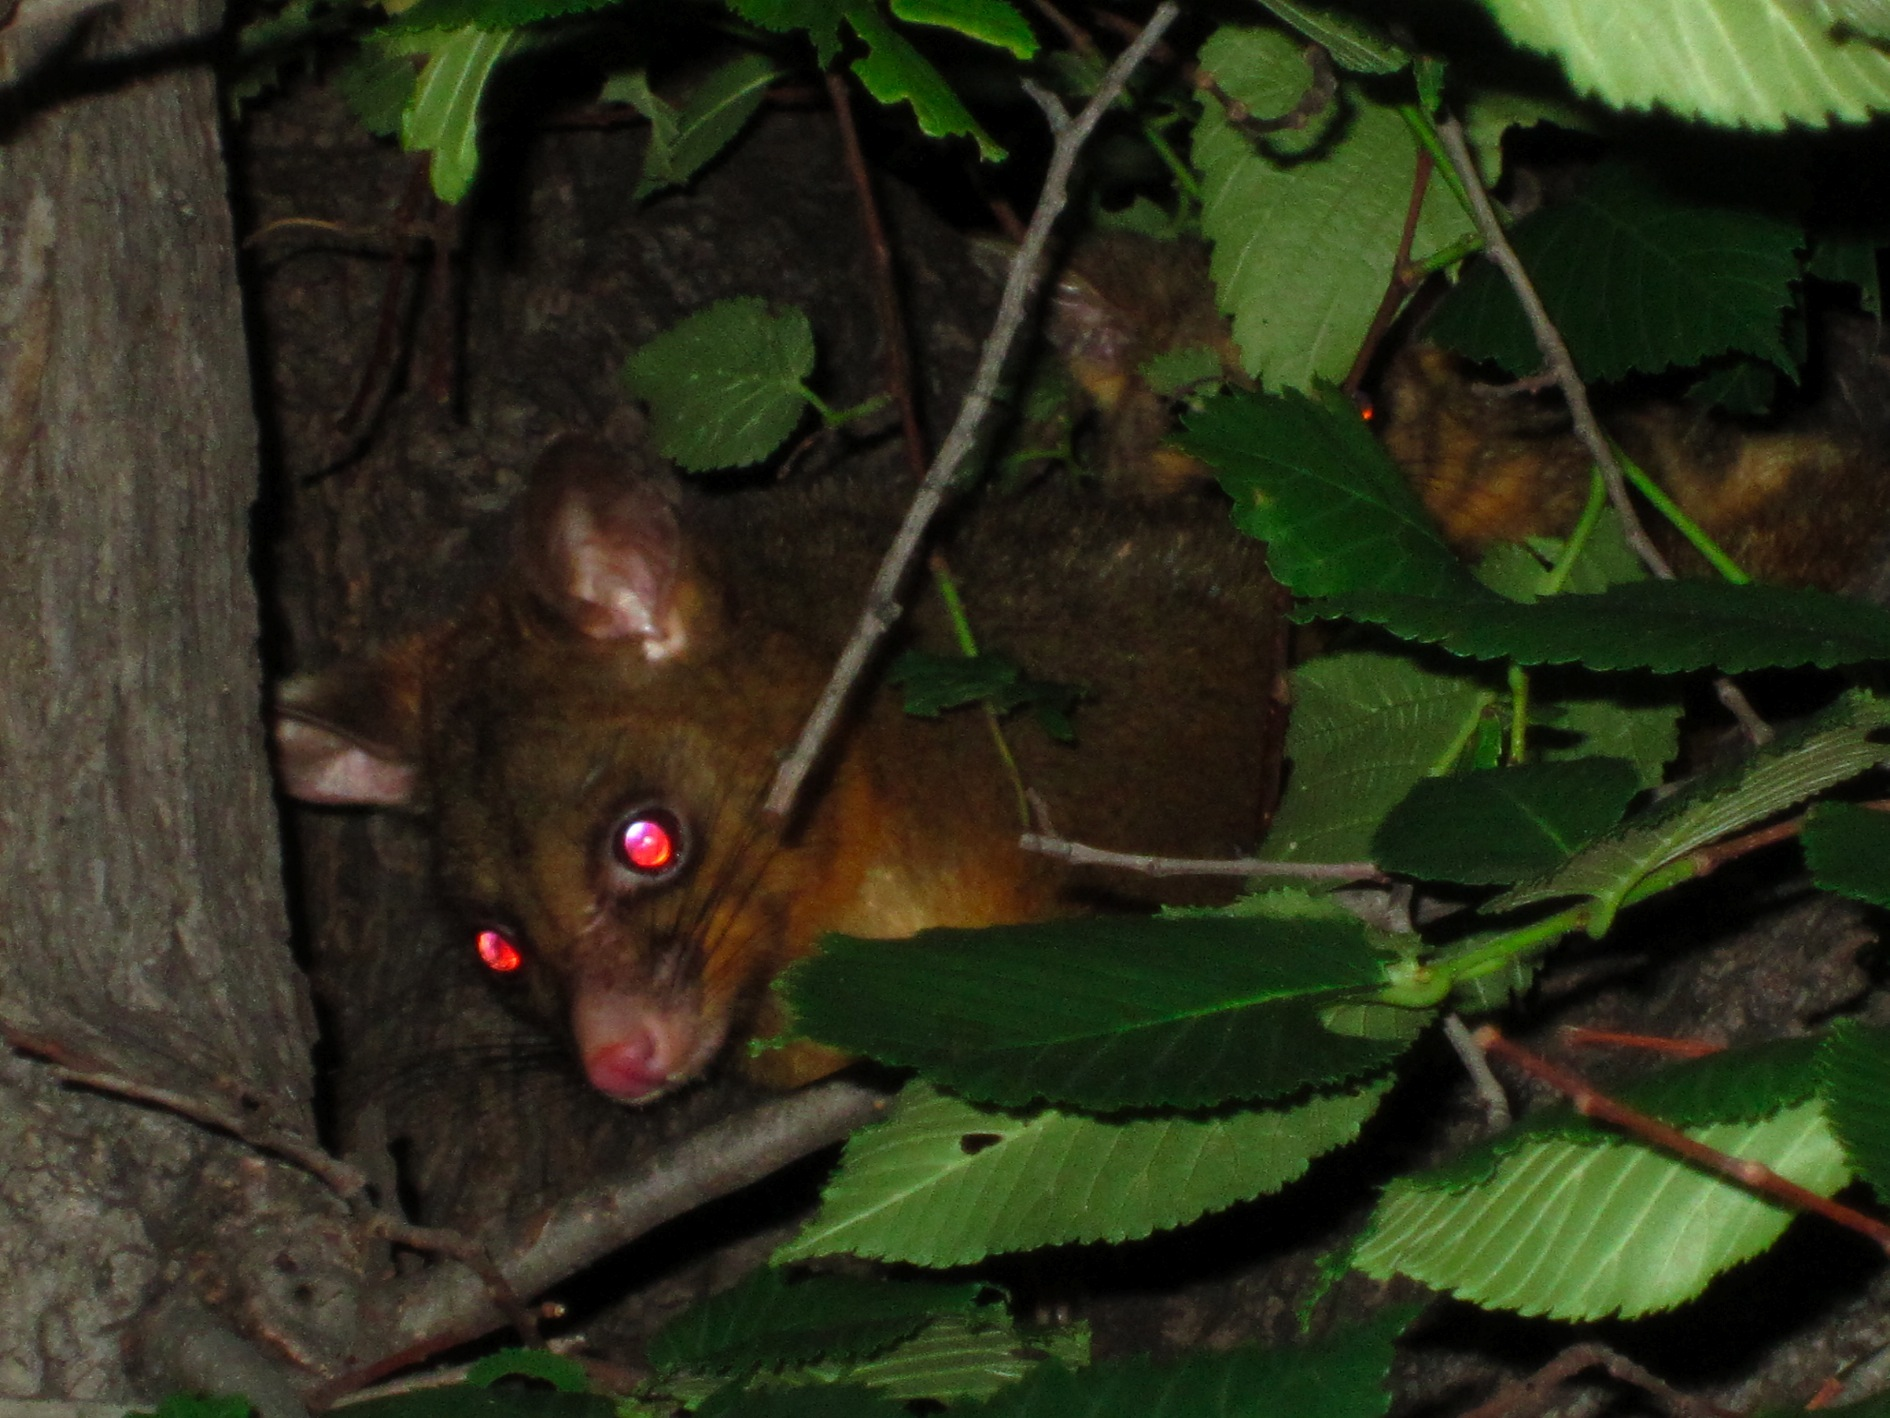 Brushtail Possum, in St. Kilda, 2 Dec 2011. You can see a baby peeking over mom's back